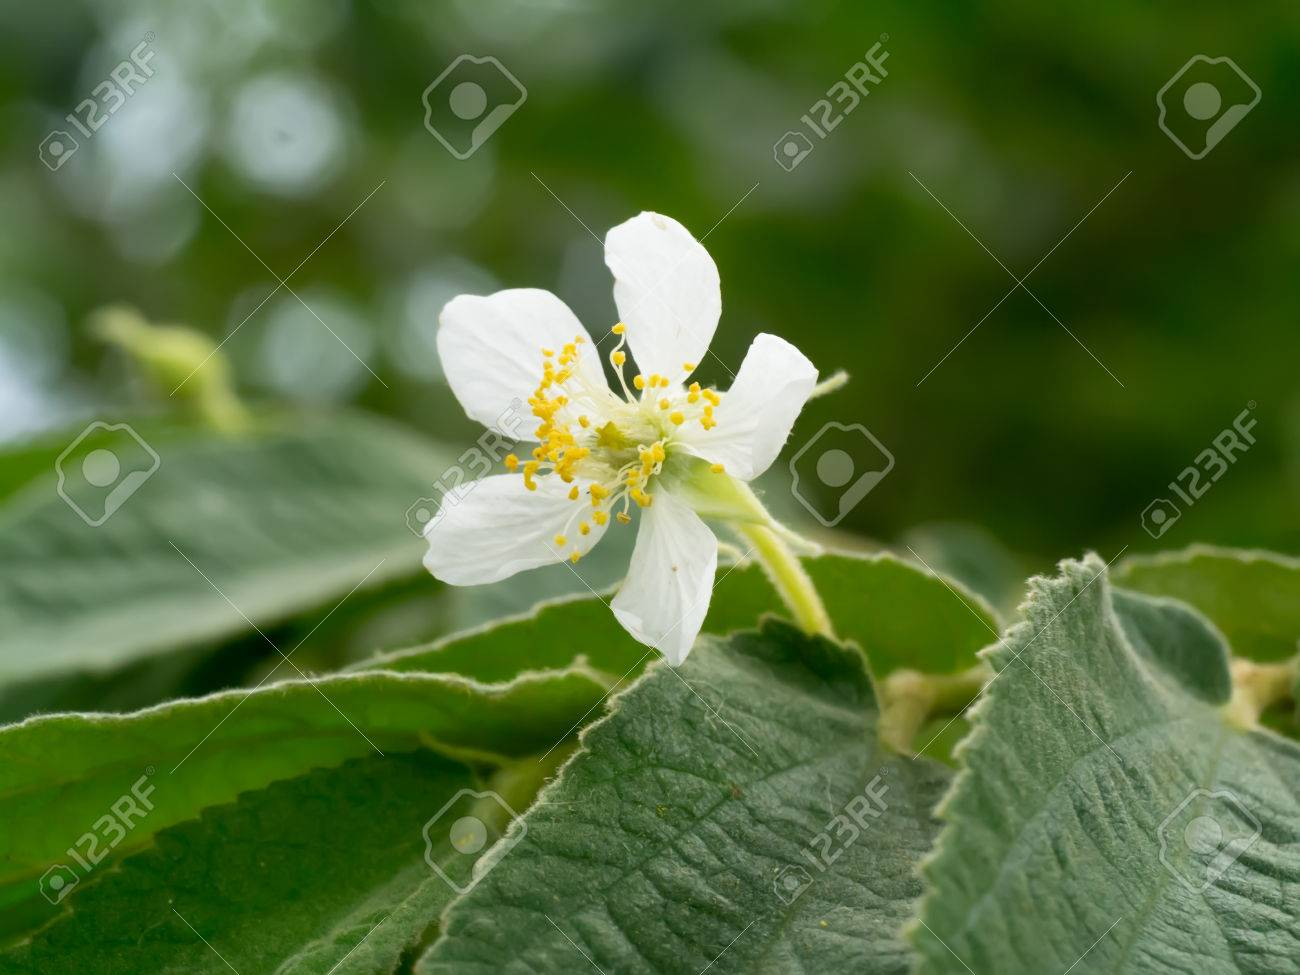 White Flower Of Indian Plum Flacourtia Jangomas Tree Stock Photo